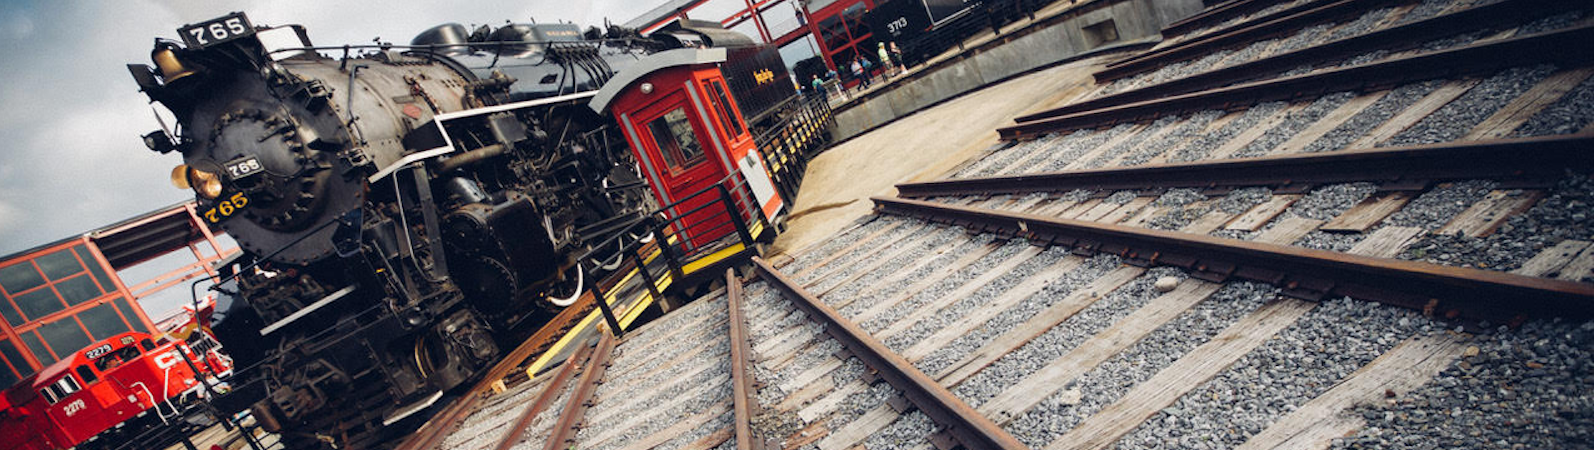 The historic Nickel Plate No. 765 is coming back to downtown Fort Wayne as part of a multi-purpose railyard park project called Headwaters Junction. <span class='image-credits'>By Kelly Lynch</span>